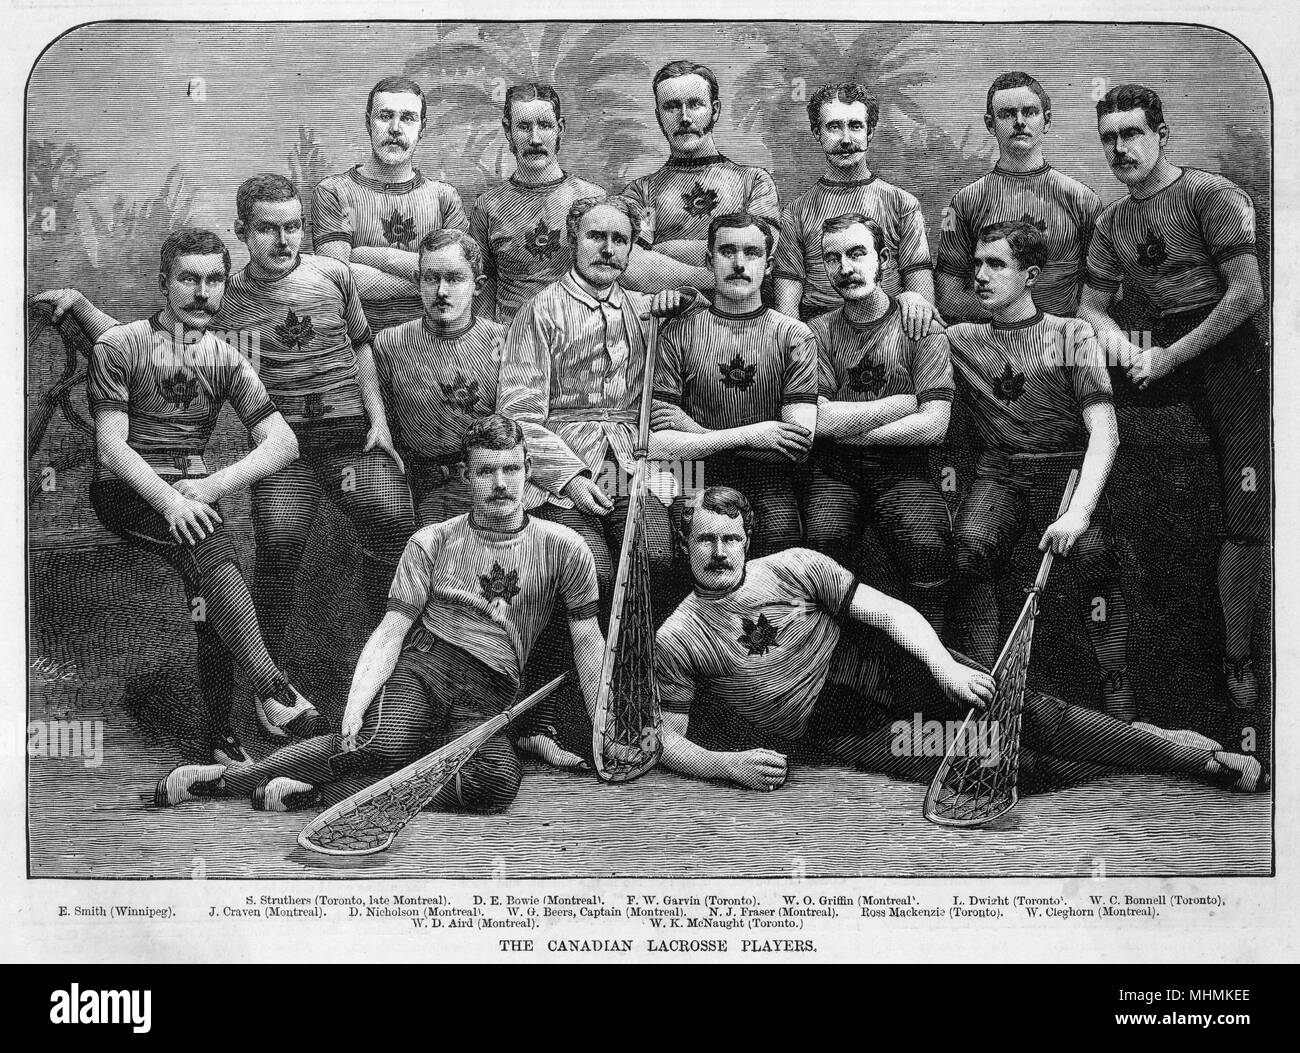 A group picture of the Canadian lacrosse team of 1883.       Date: 1883 - Stock Image